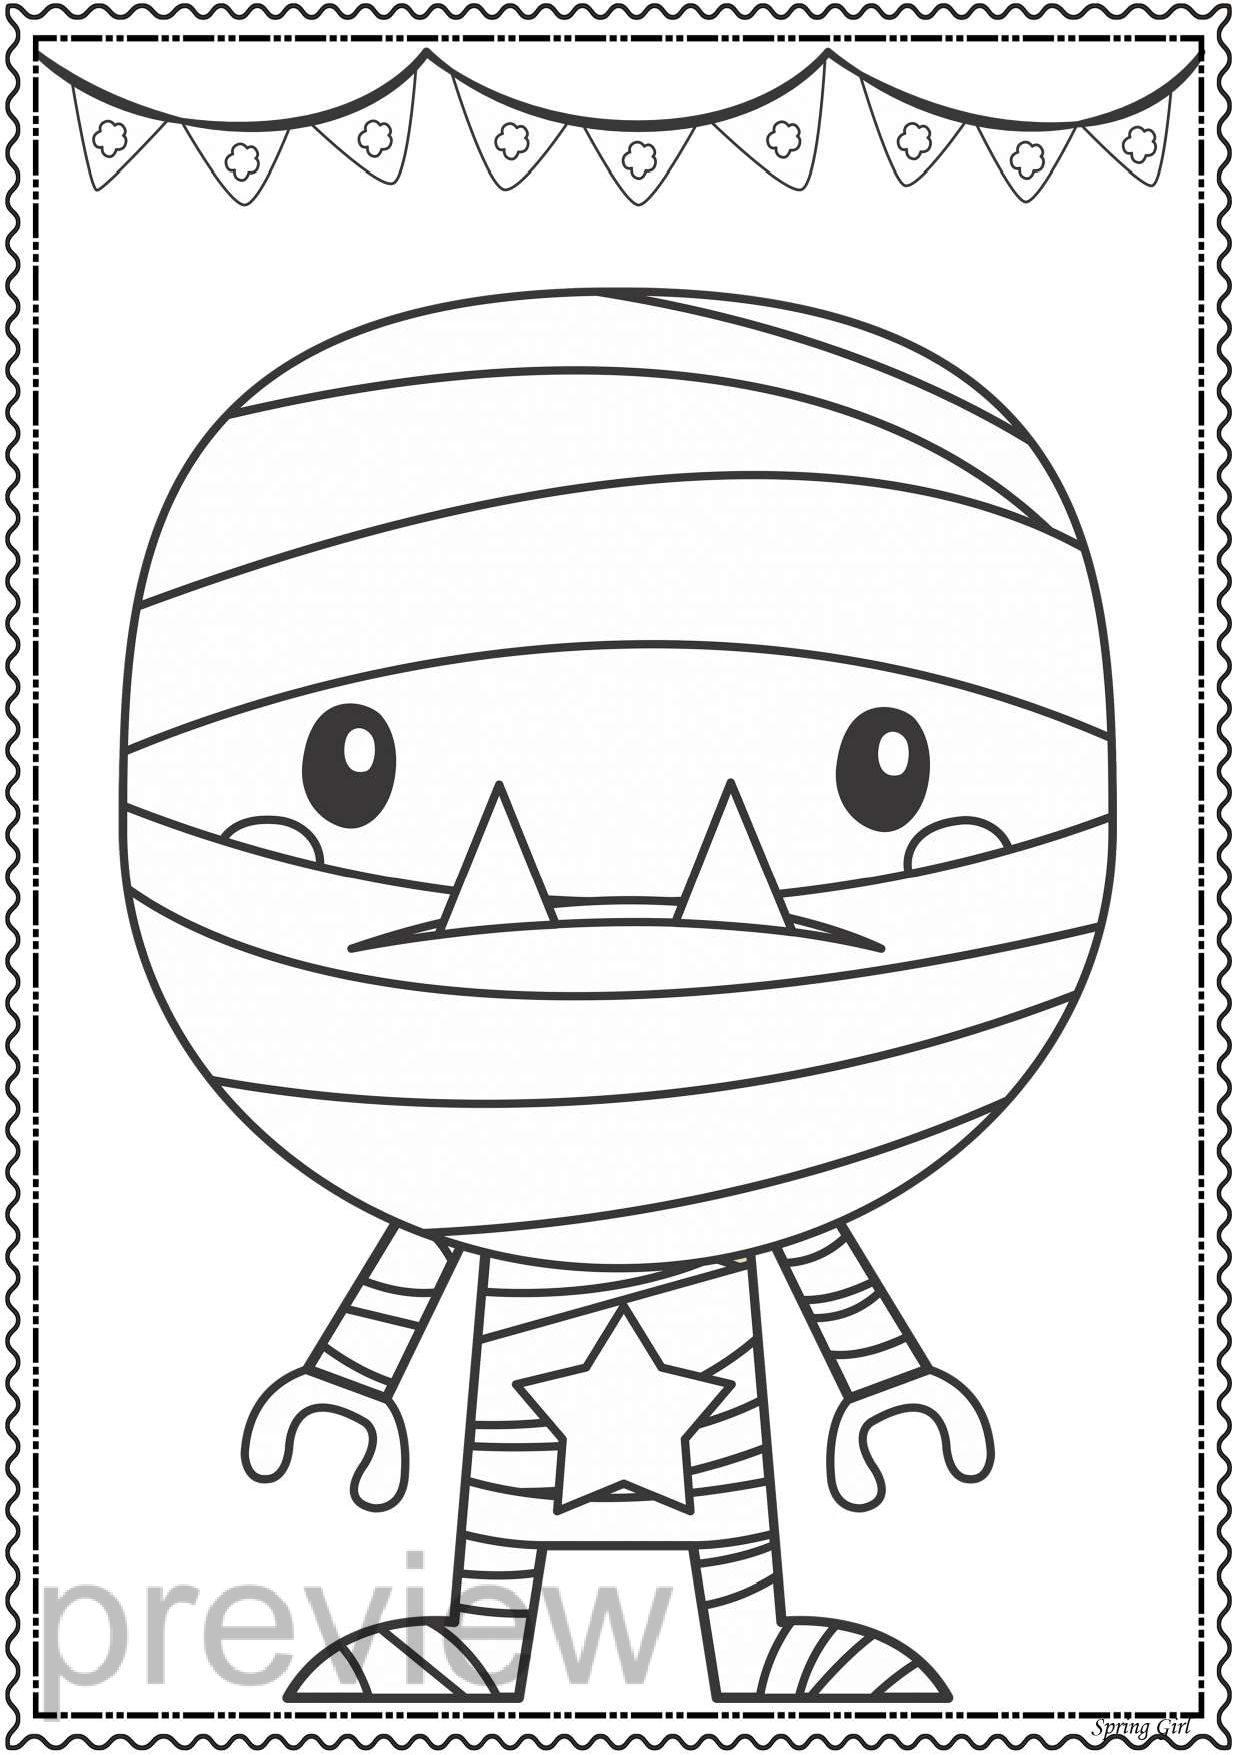 Halloween Coloring Pages Coloring Bookmarks Coloring Pages Halloween Coloring